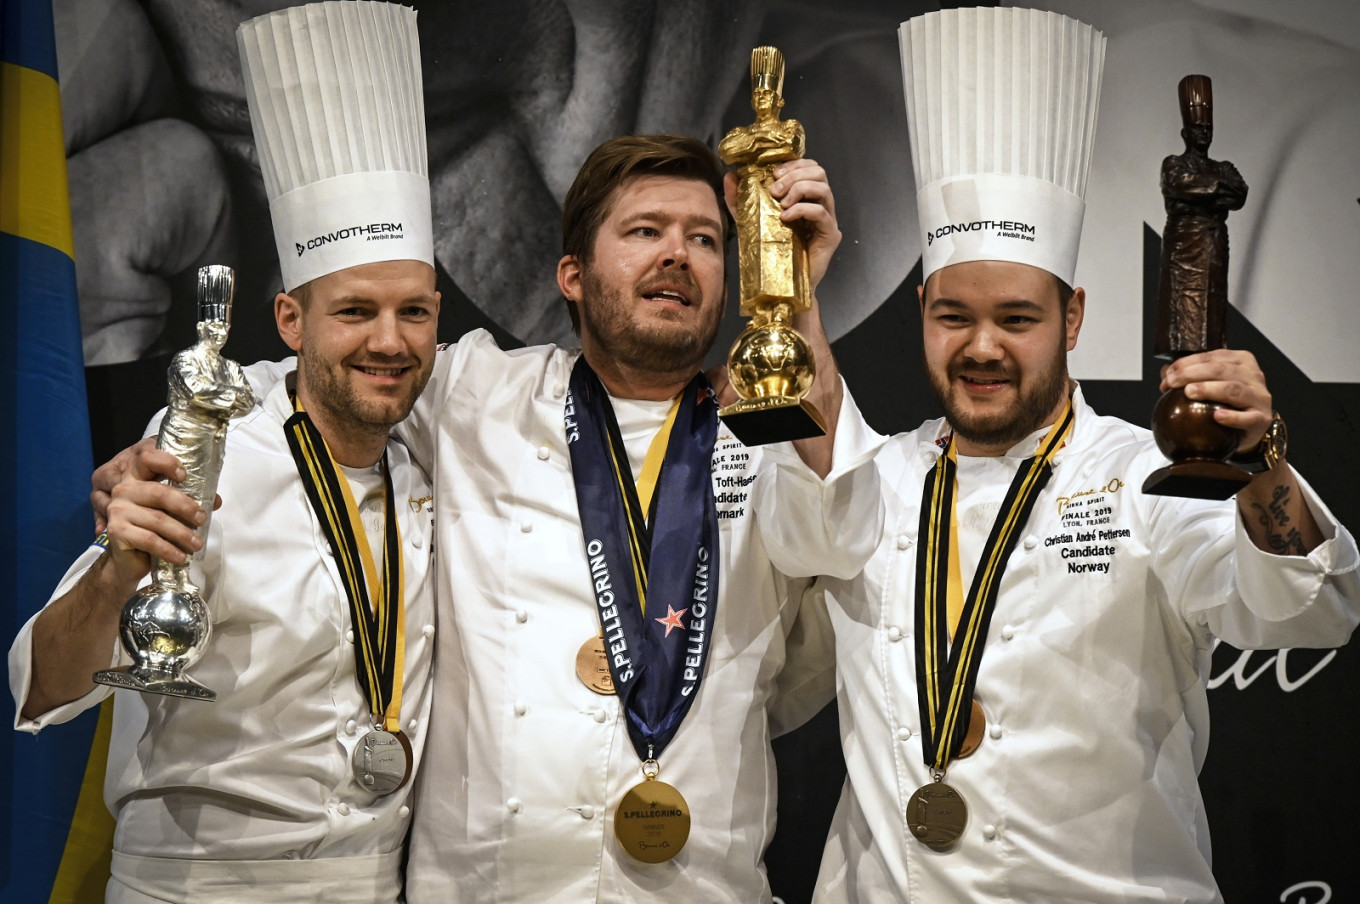 Nordic trio take Bocuse d'Or gastro plaudits